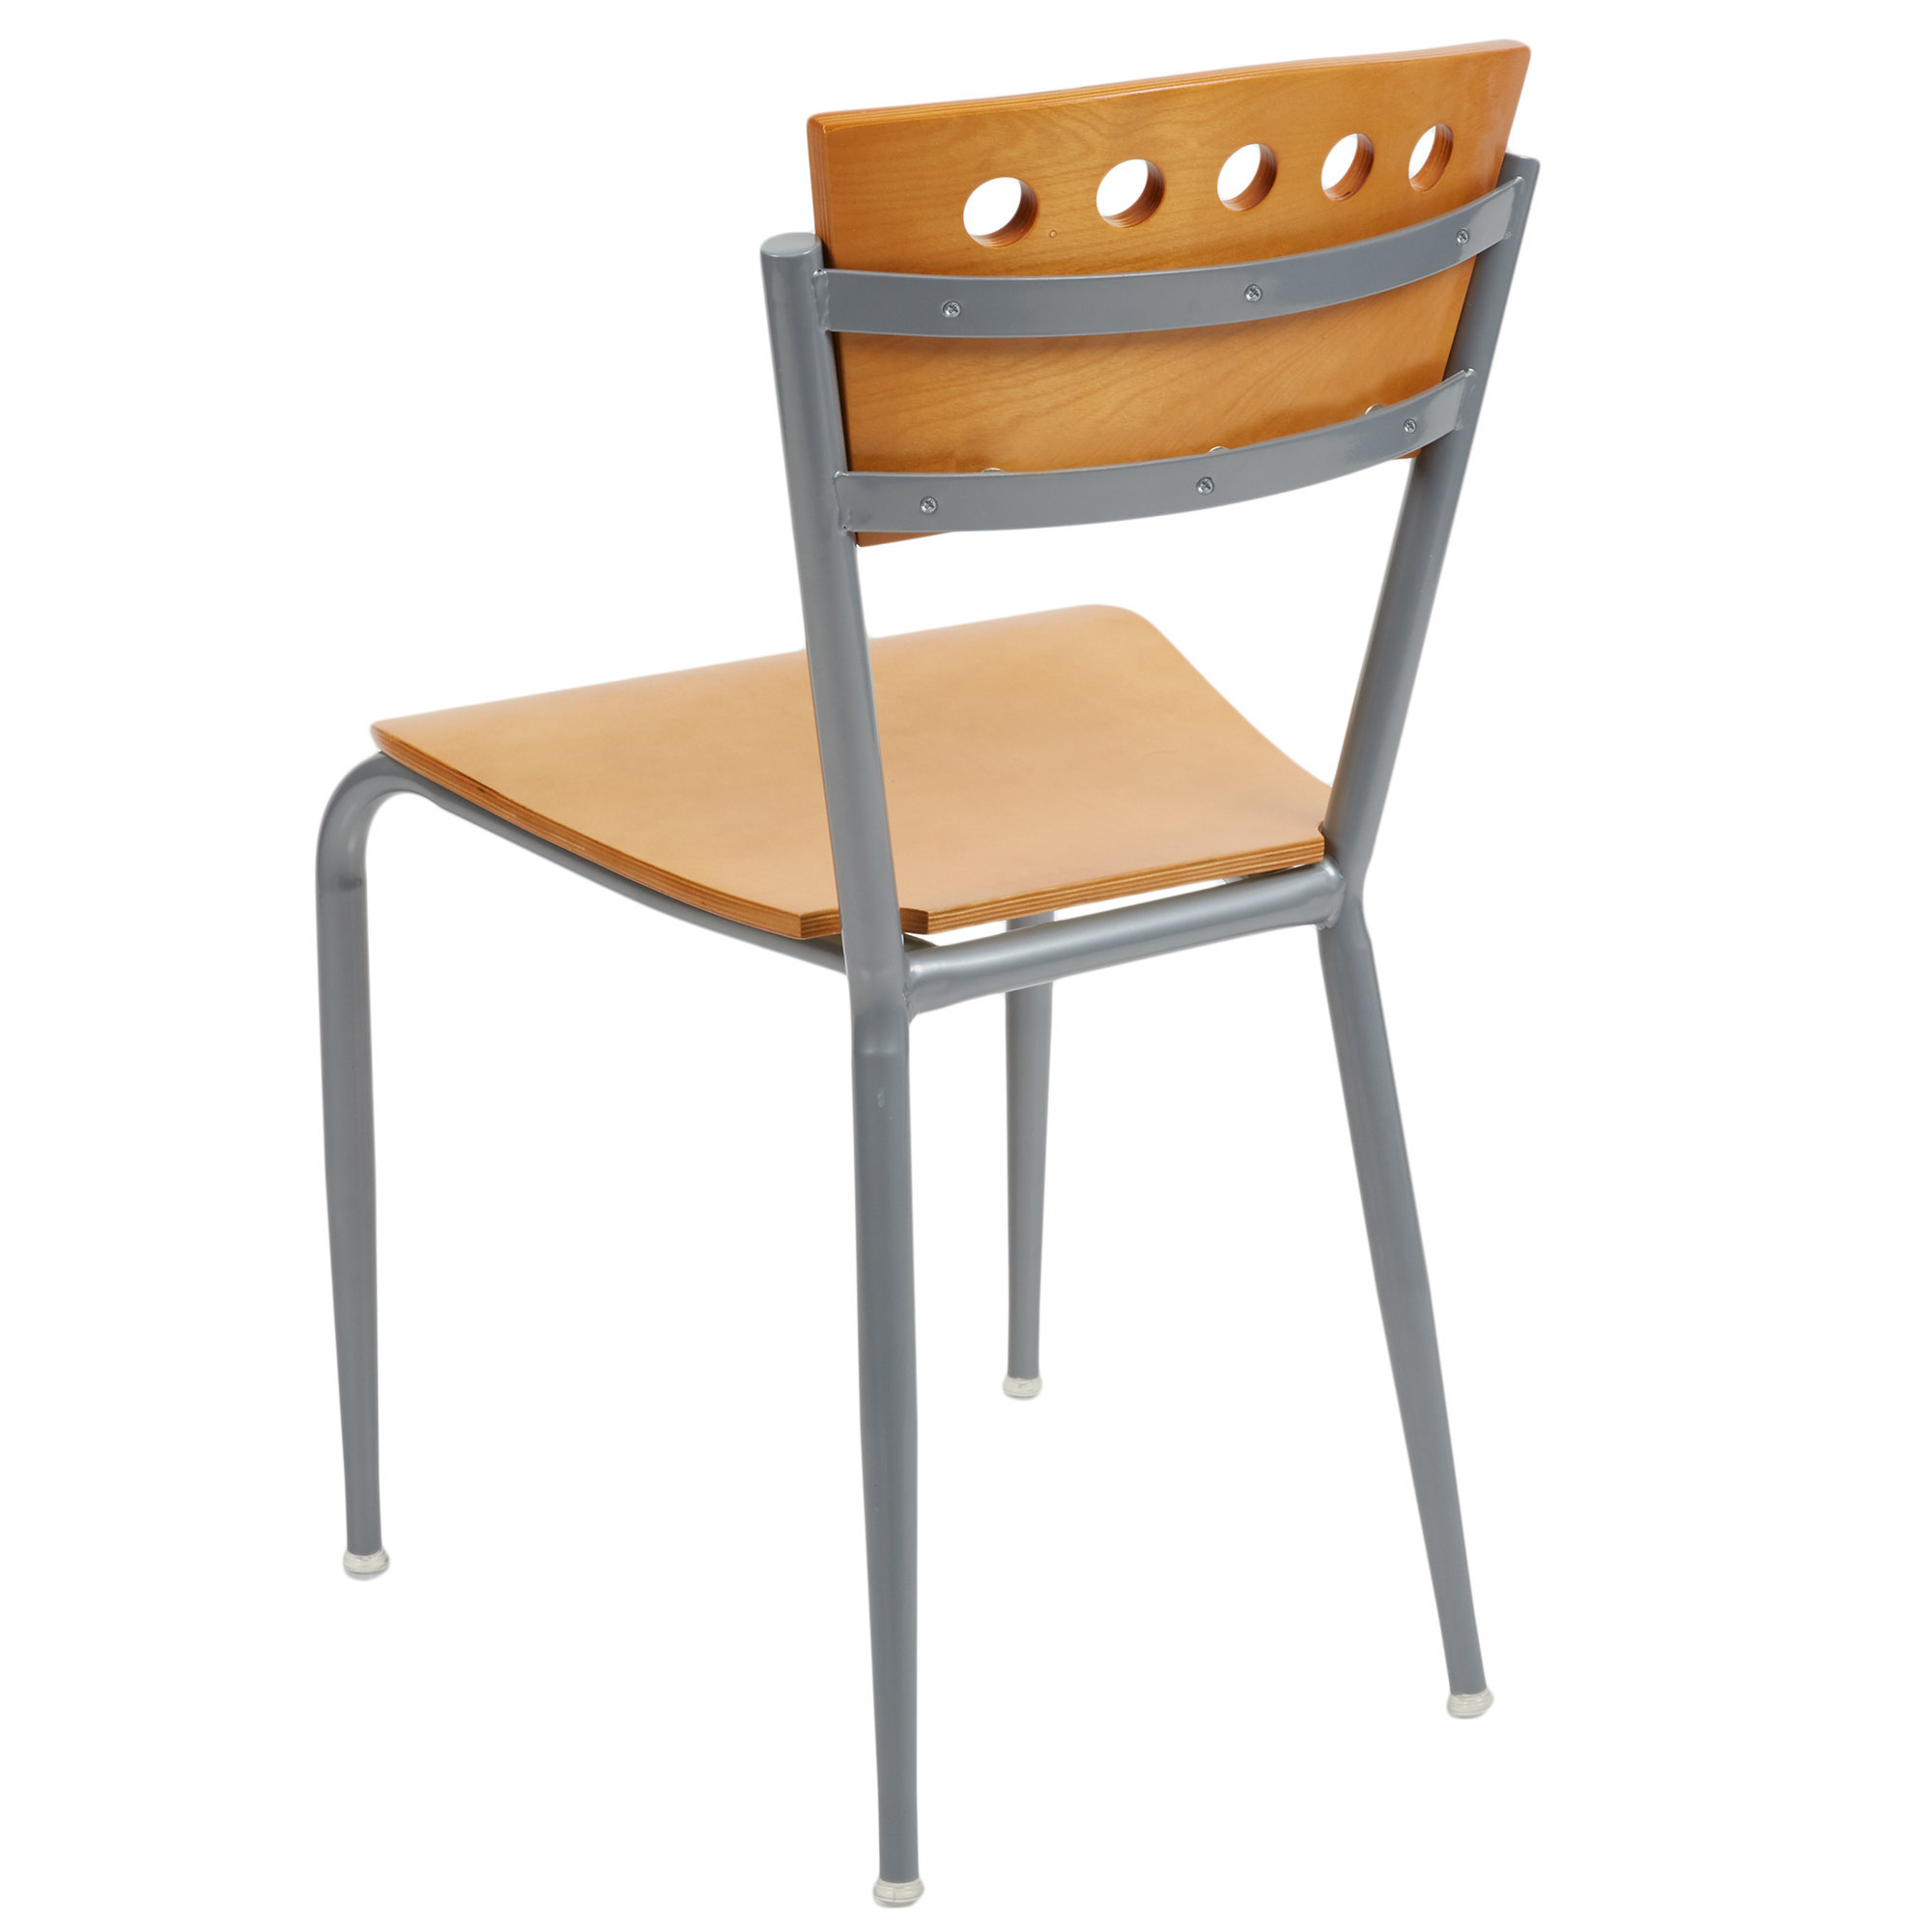 #120 - METAL RESTAURANT CHAIR WITH NATURAL WOOD BACK & SEAT